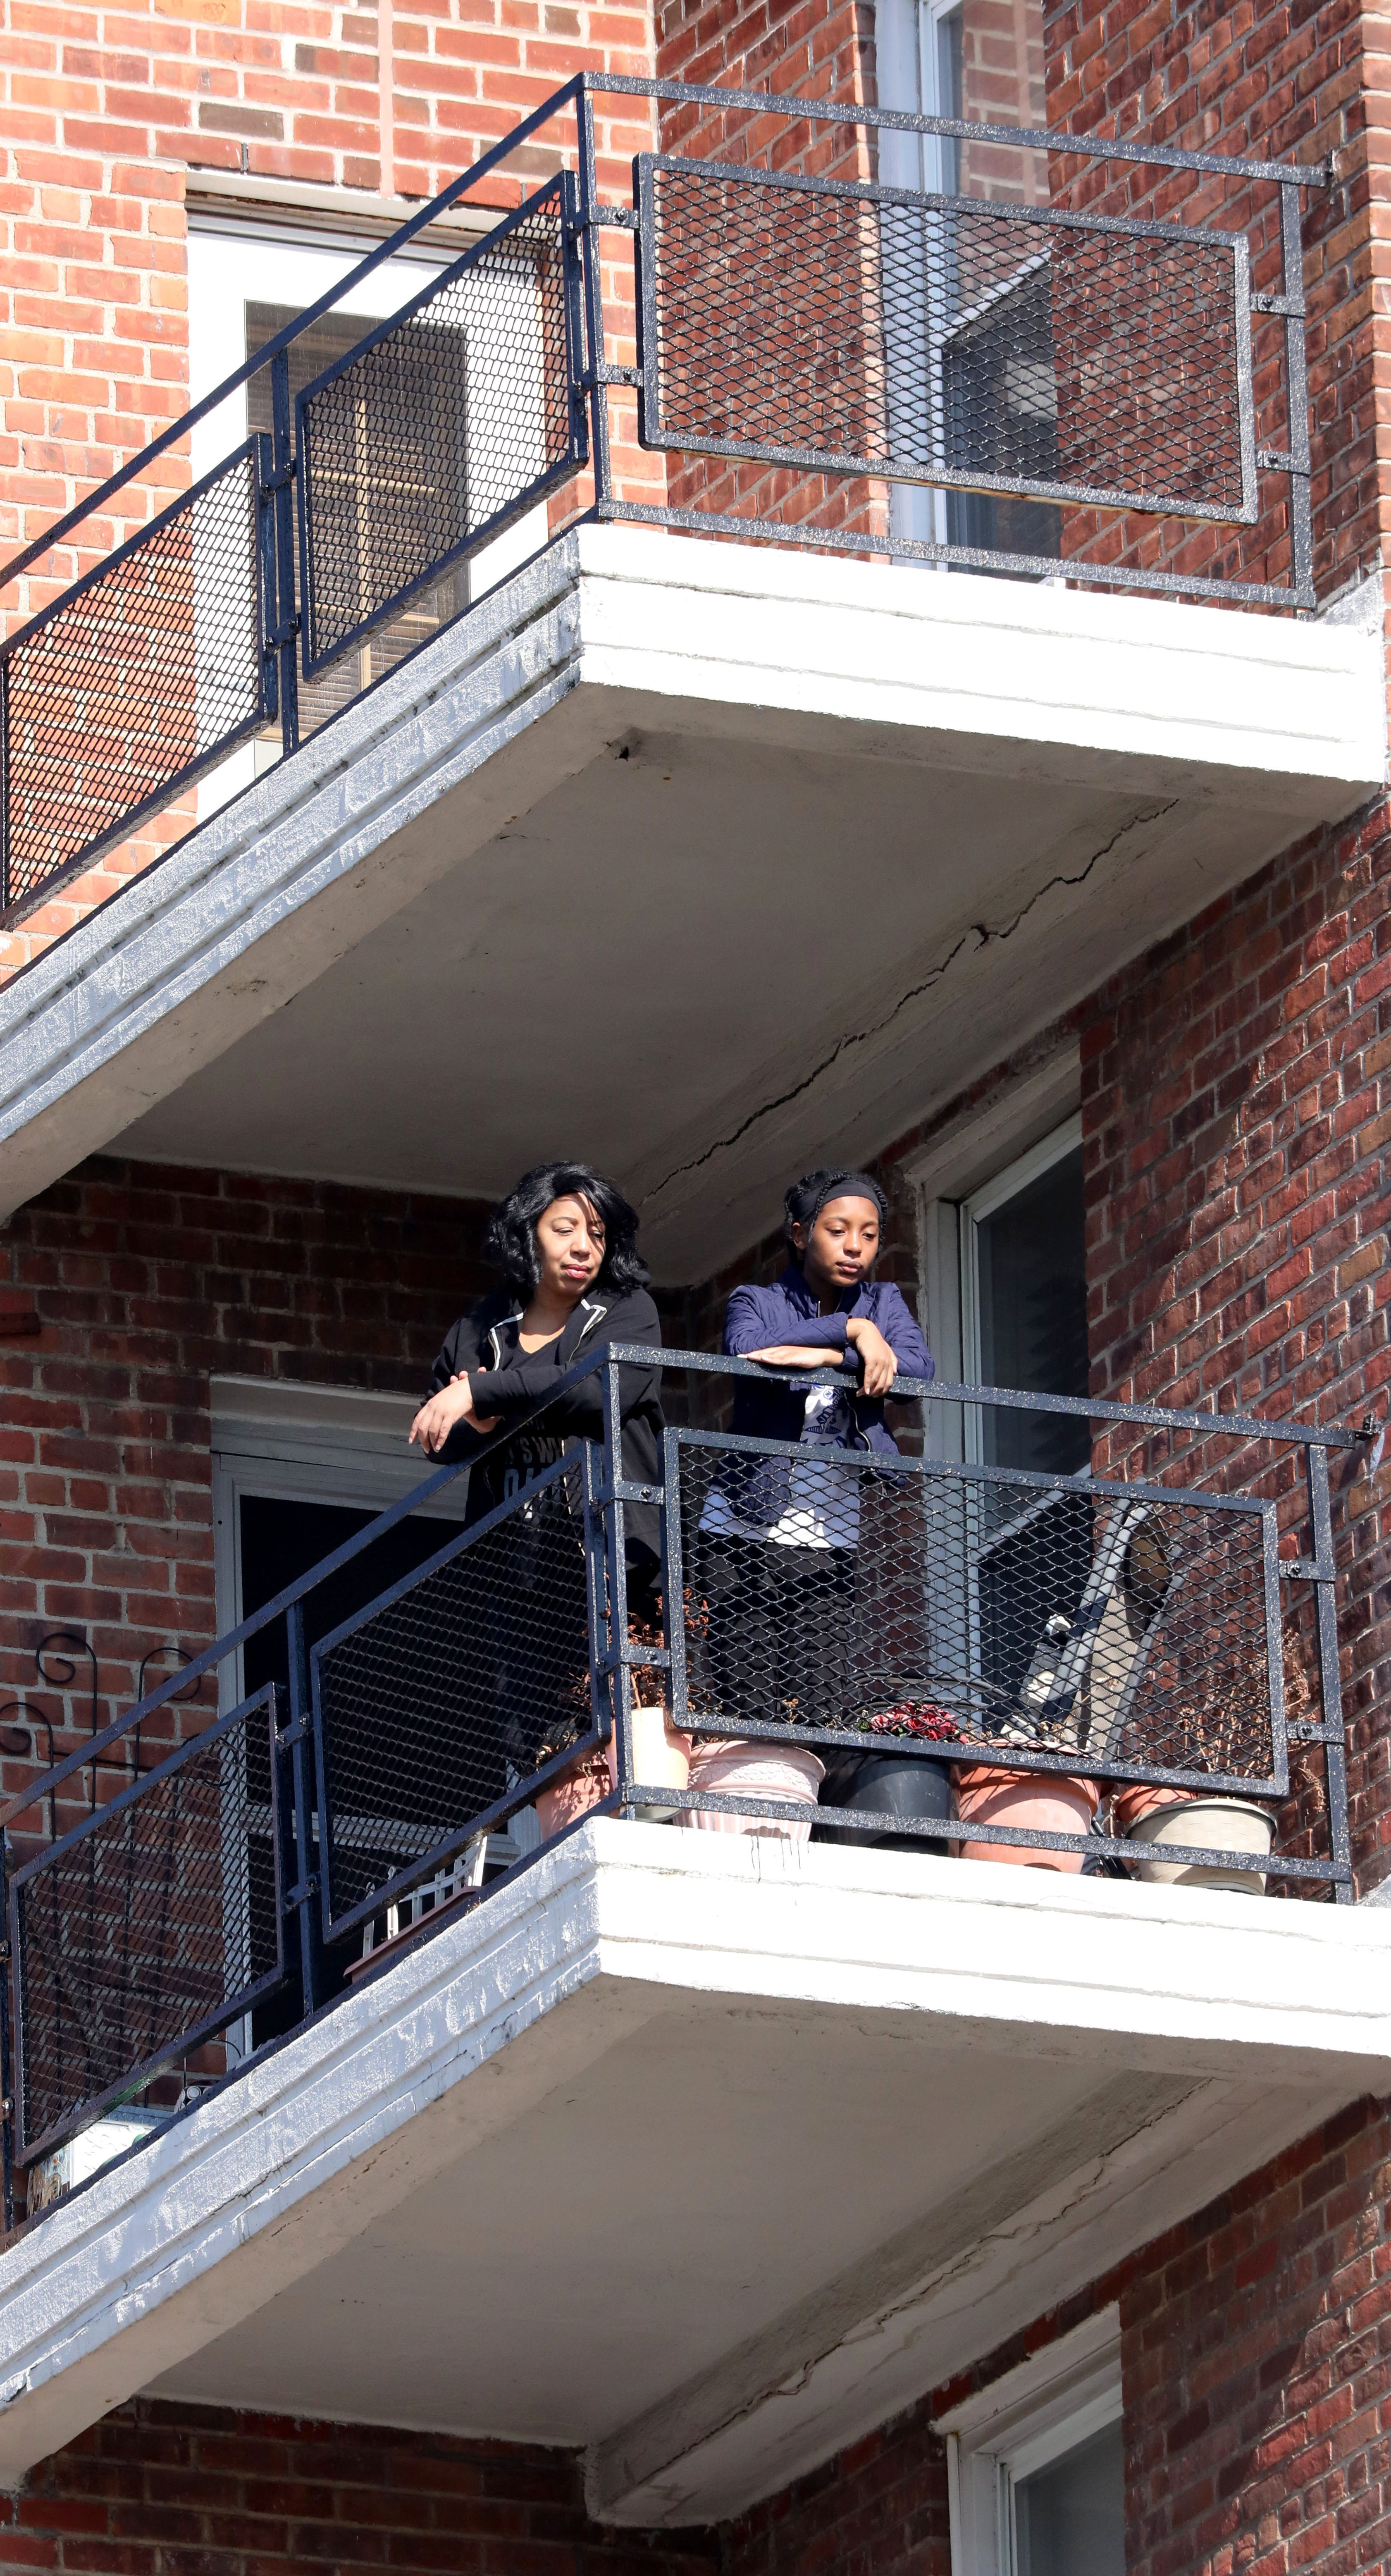 Patrice Sullivan and her daughter Janelle, 14, are focused on the way forward: stopping at nothing to achieve their dreams. They're shown here getting fresh air outside their Yonkers co-op apartment.